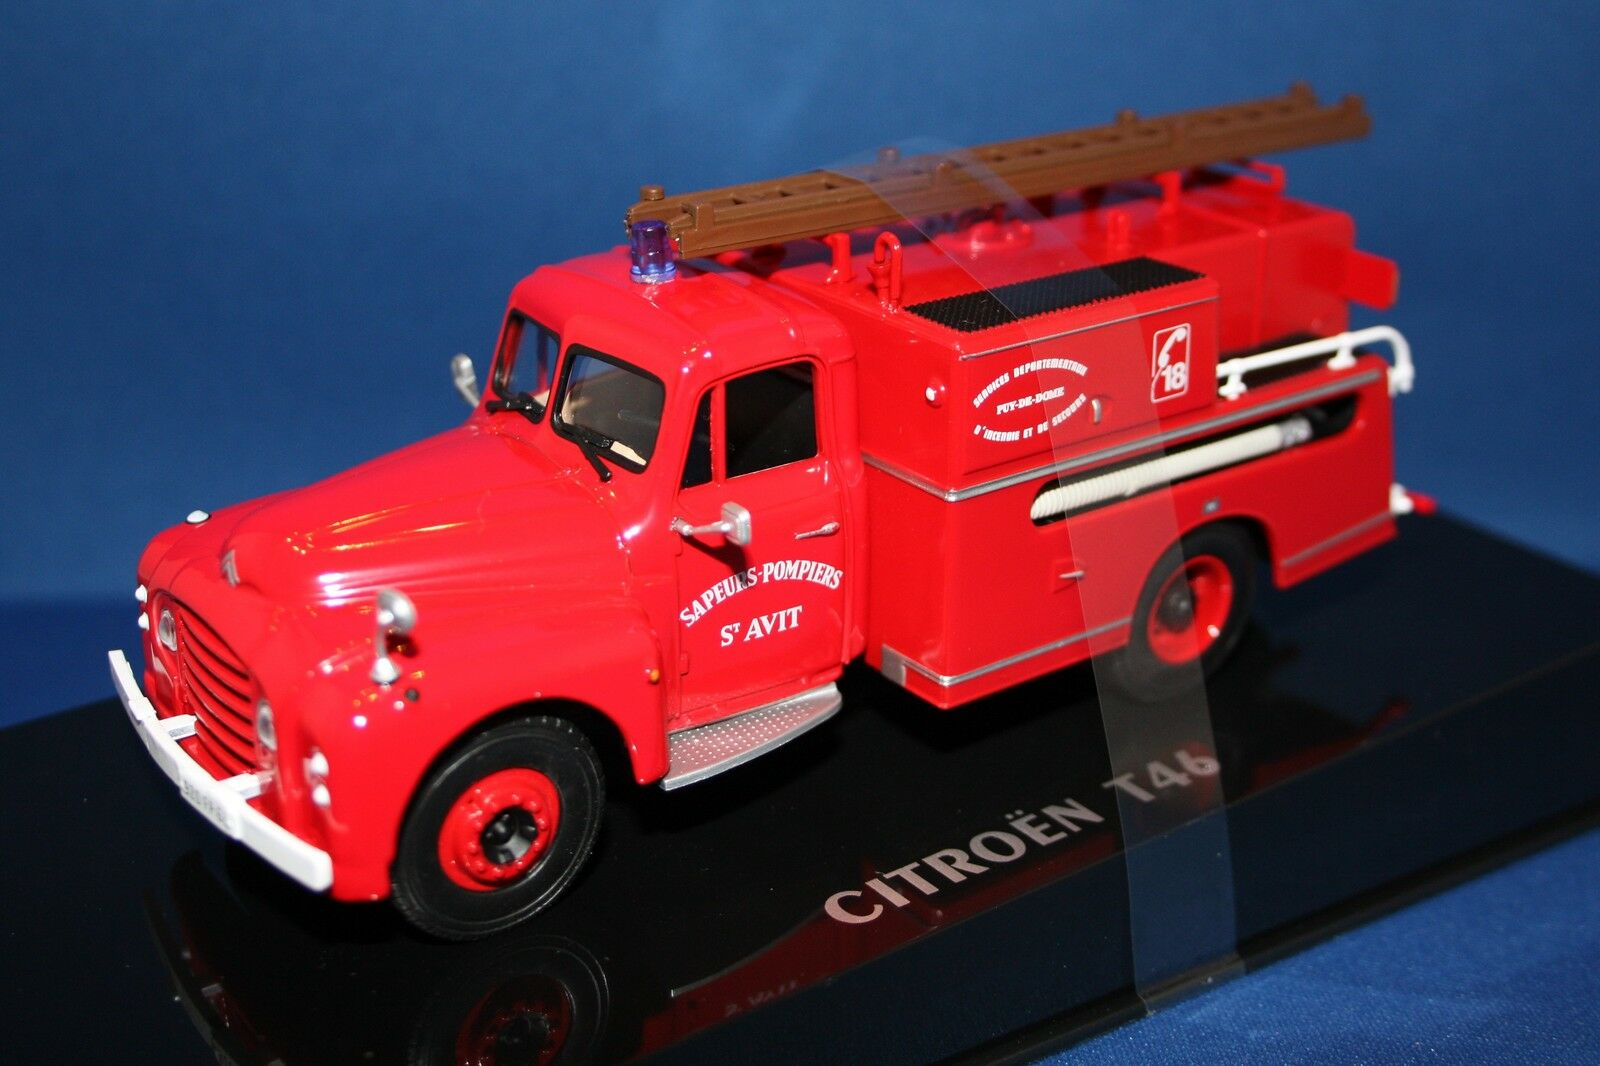 1962 CITROEN T46 POMPIERS CLASSIC FRENCH FIRE ENGINE  1 43 by NOREV 159988